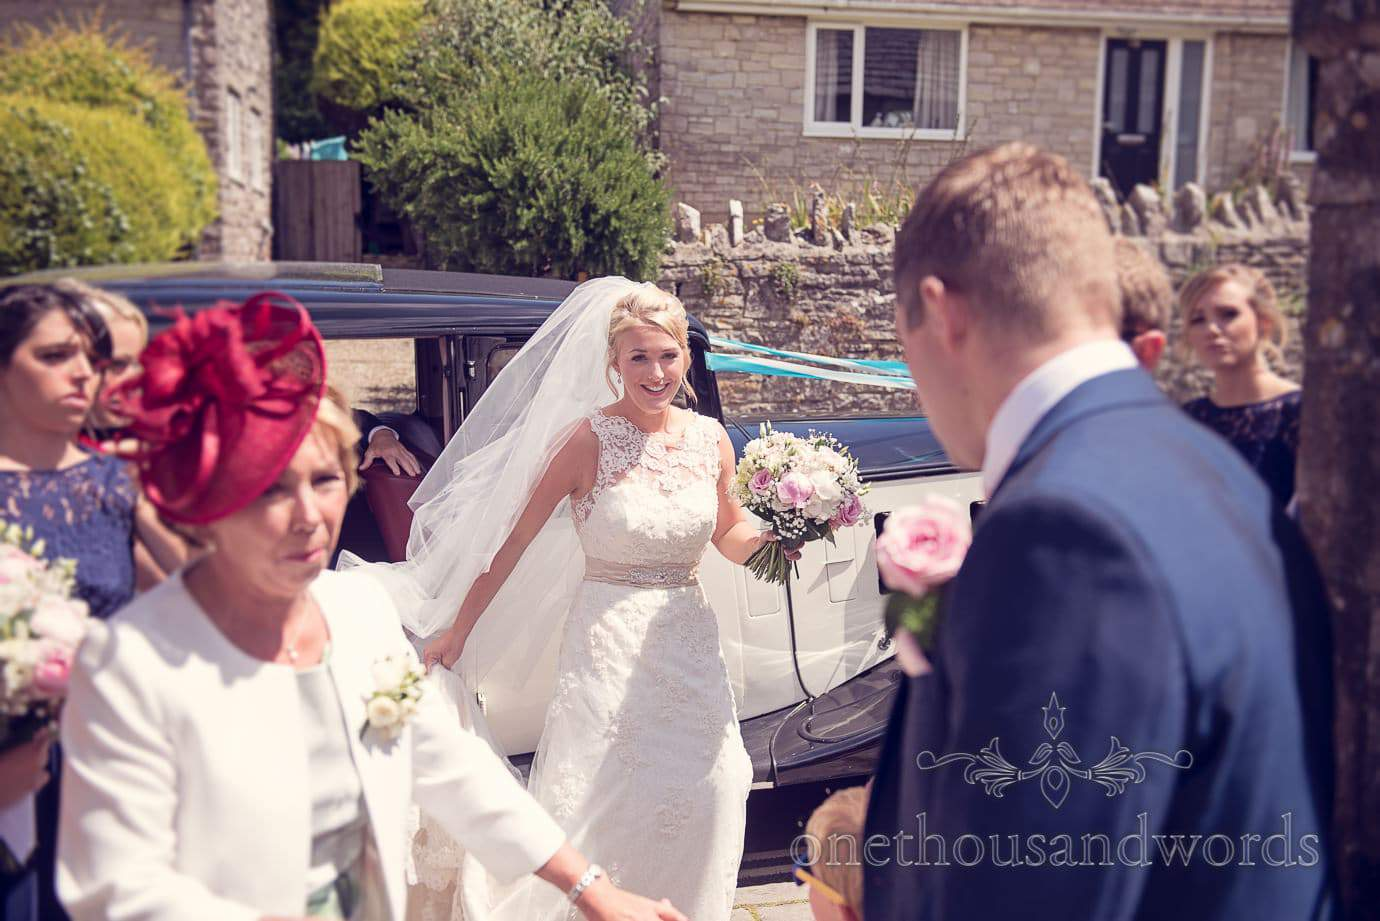 Bride steps out of classic wedding car at Swanage Church wedding